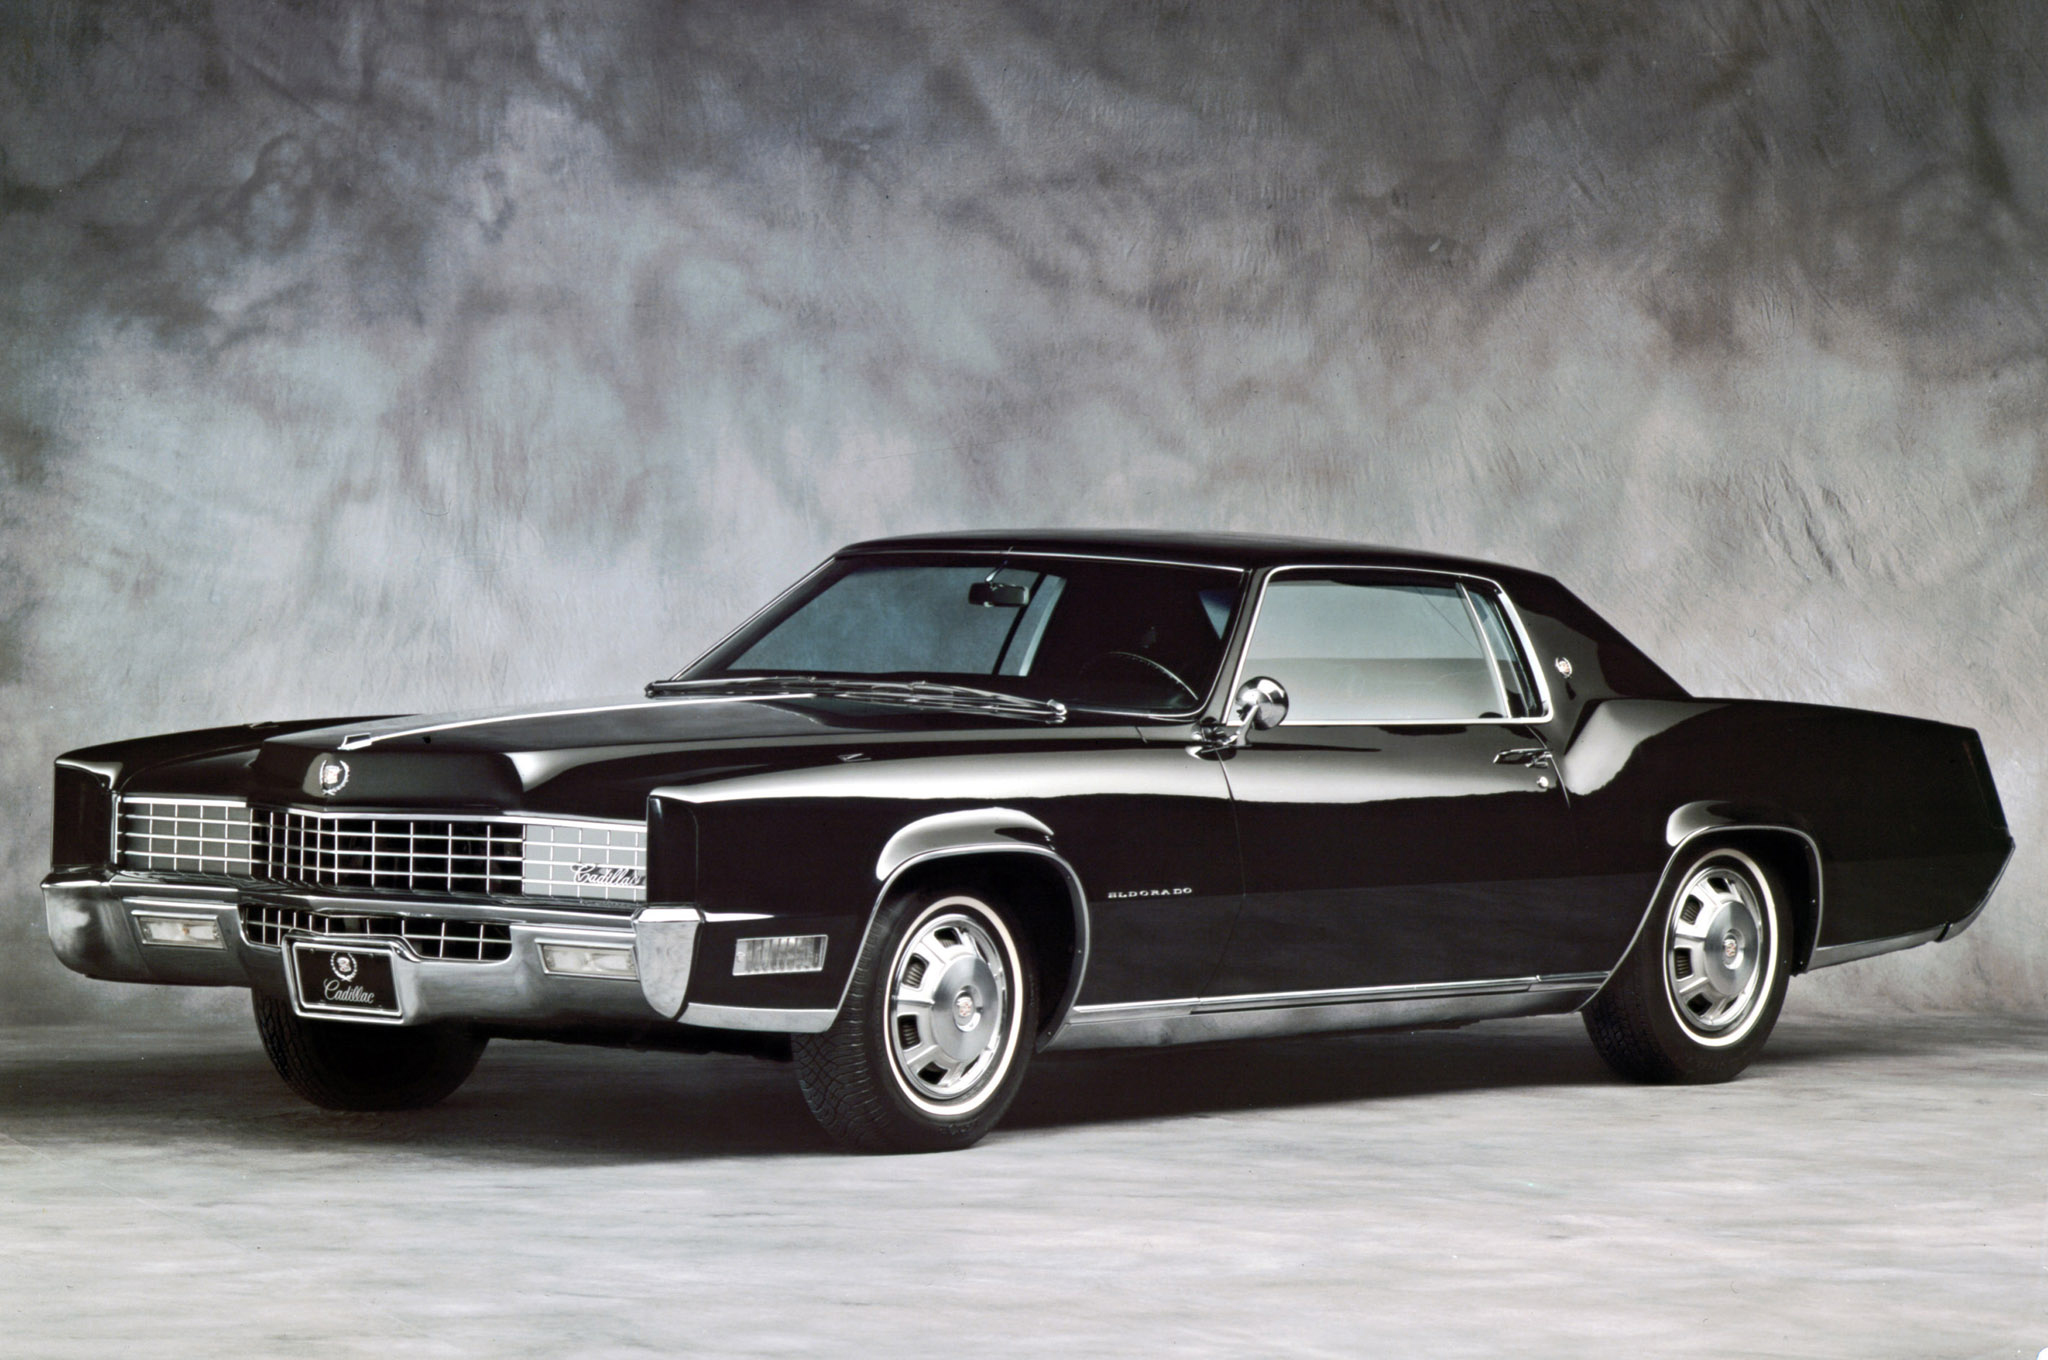 2015 Cadillac Fleetwood 21 Wide Car Wallpaper